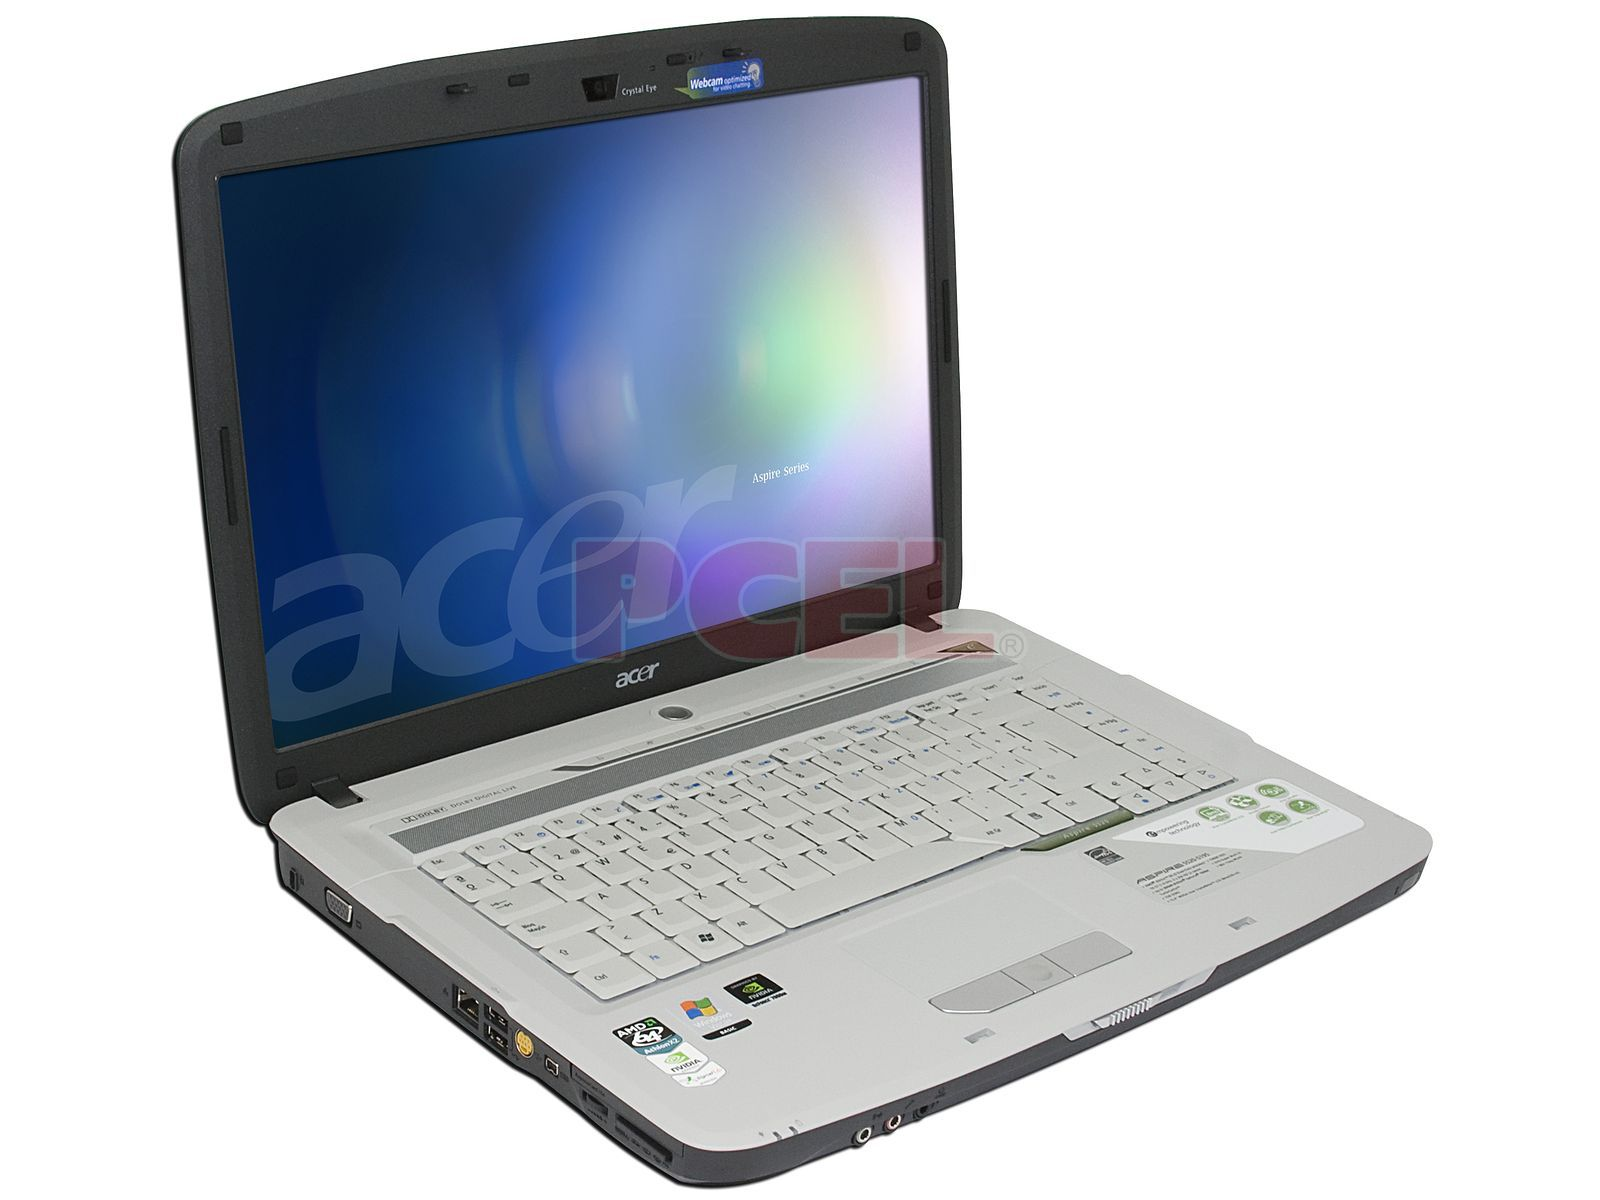 ACER AS5520 DRIVER DOWNLOAD